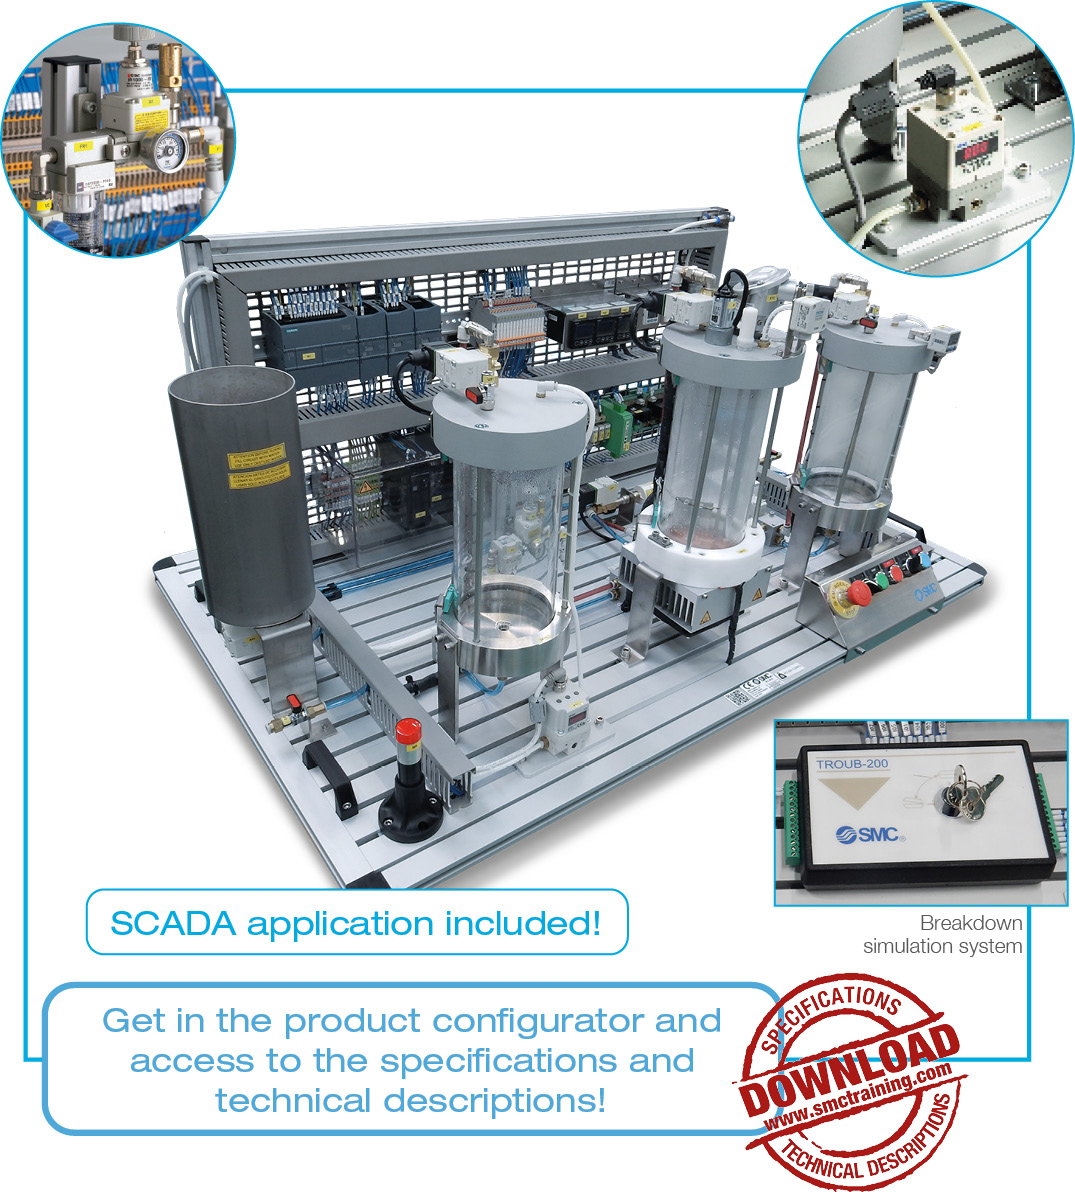 IPC-201C - Production station for the regulation and control of analogue variables